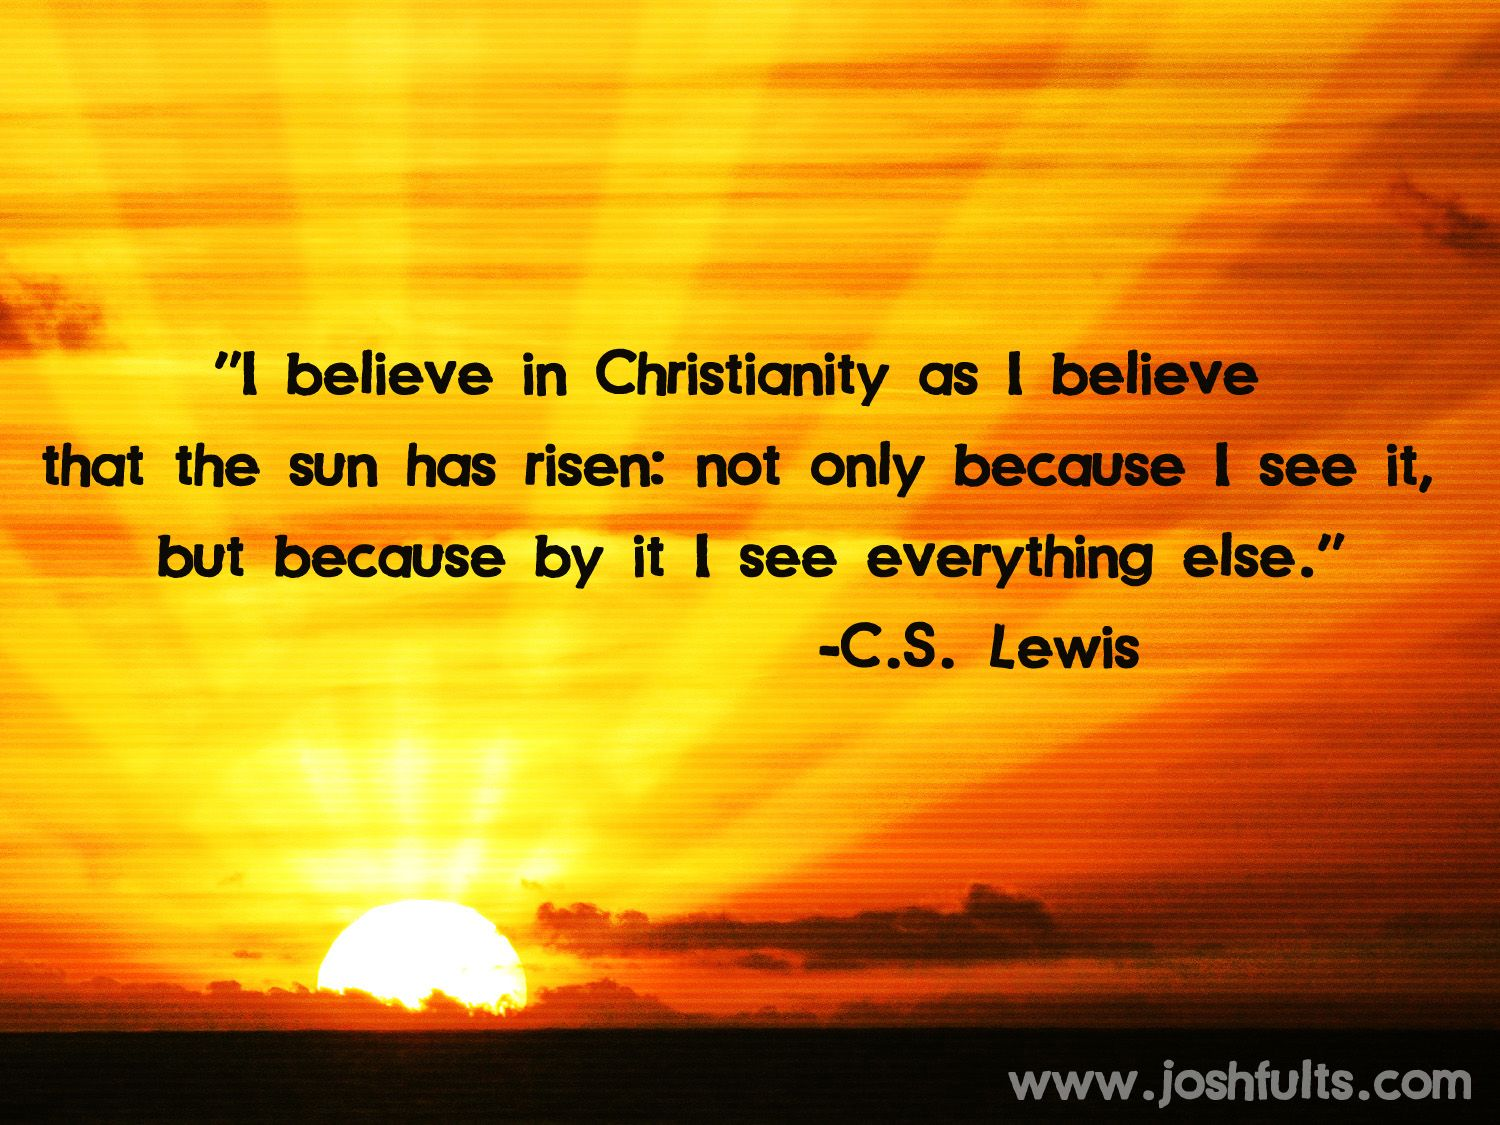 Simply Sunday | From C.S. Lewis